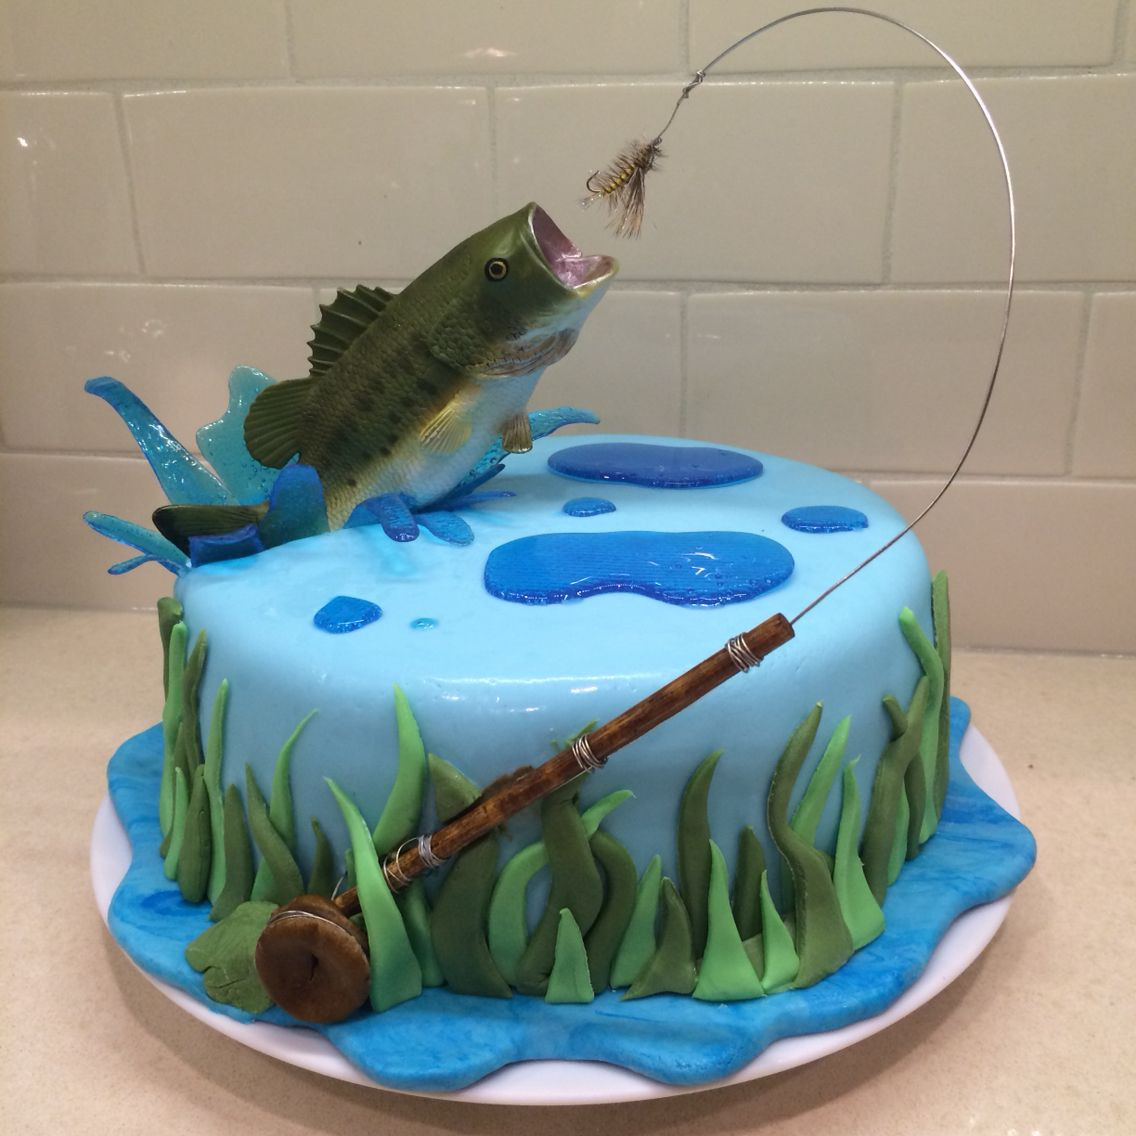 Best ideas about Fishing Birthday Cake . Save or Pin Fly fishing cake for my hubby Bass jumping out of water Now.